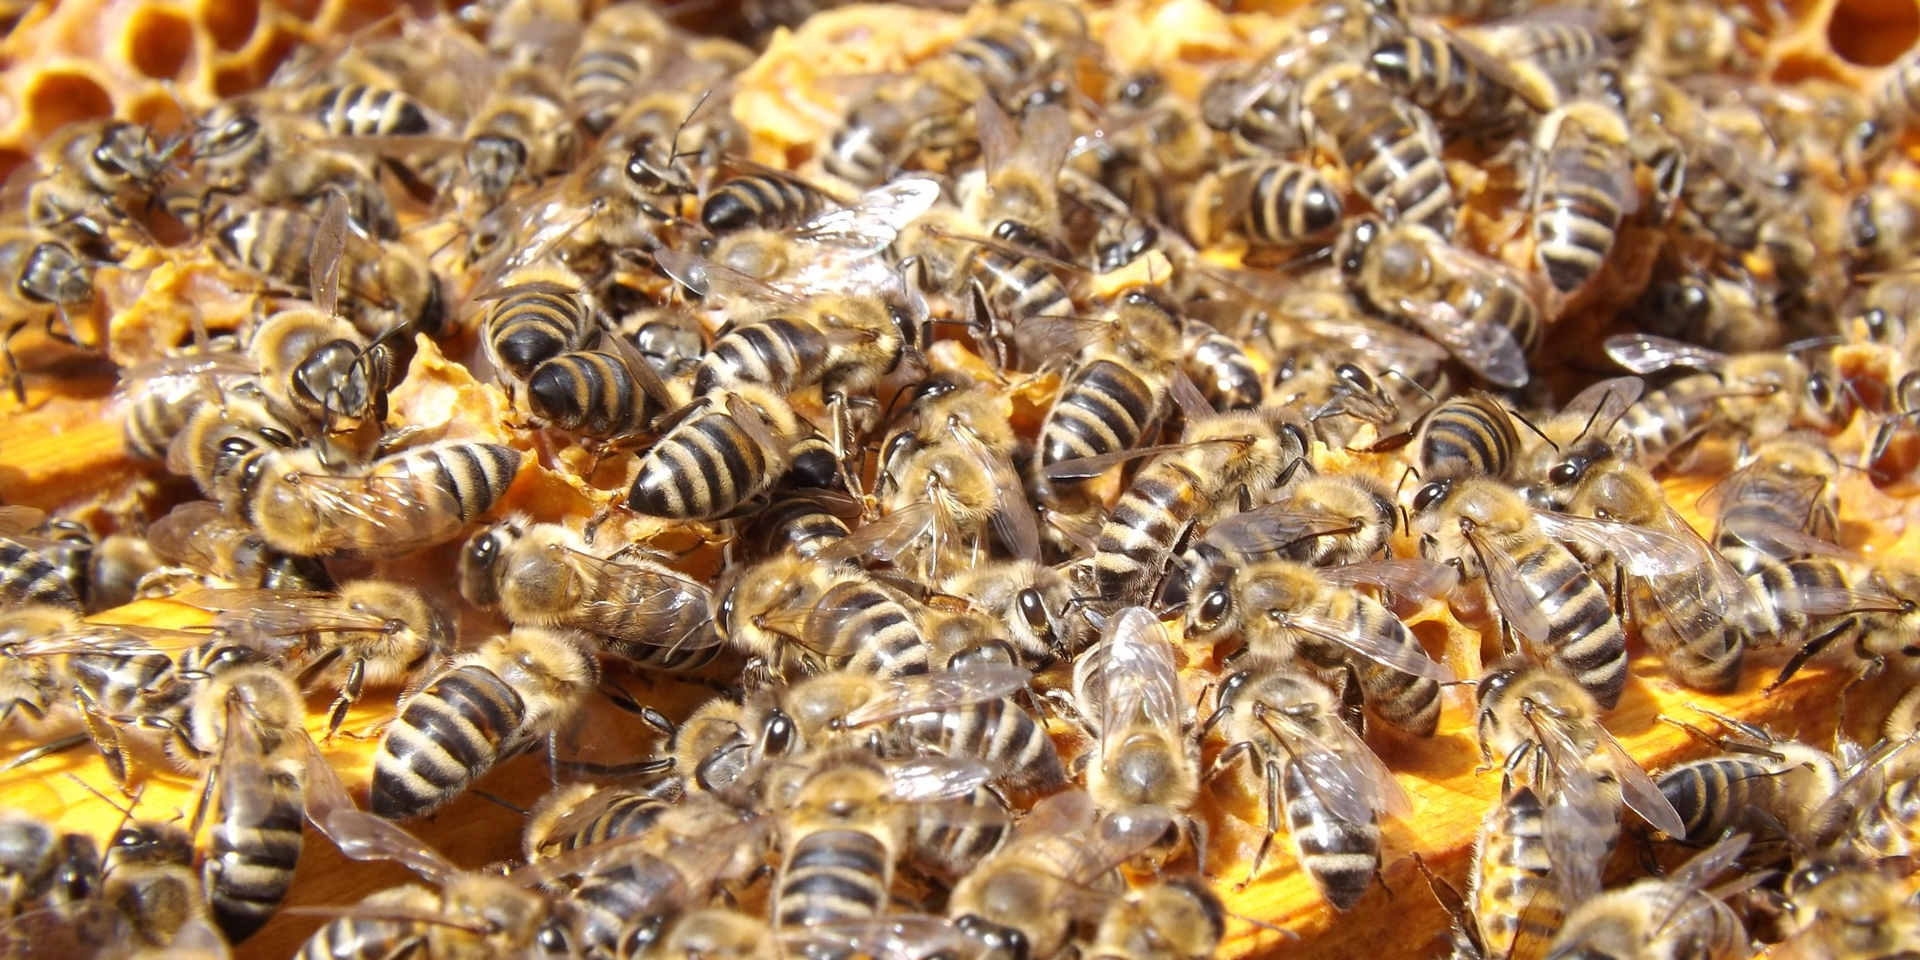 swarm-insects-bees-honey-48022.jpg